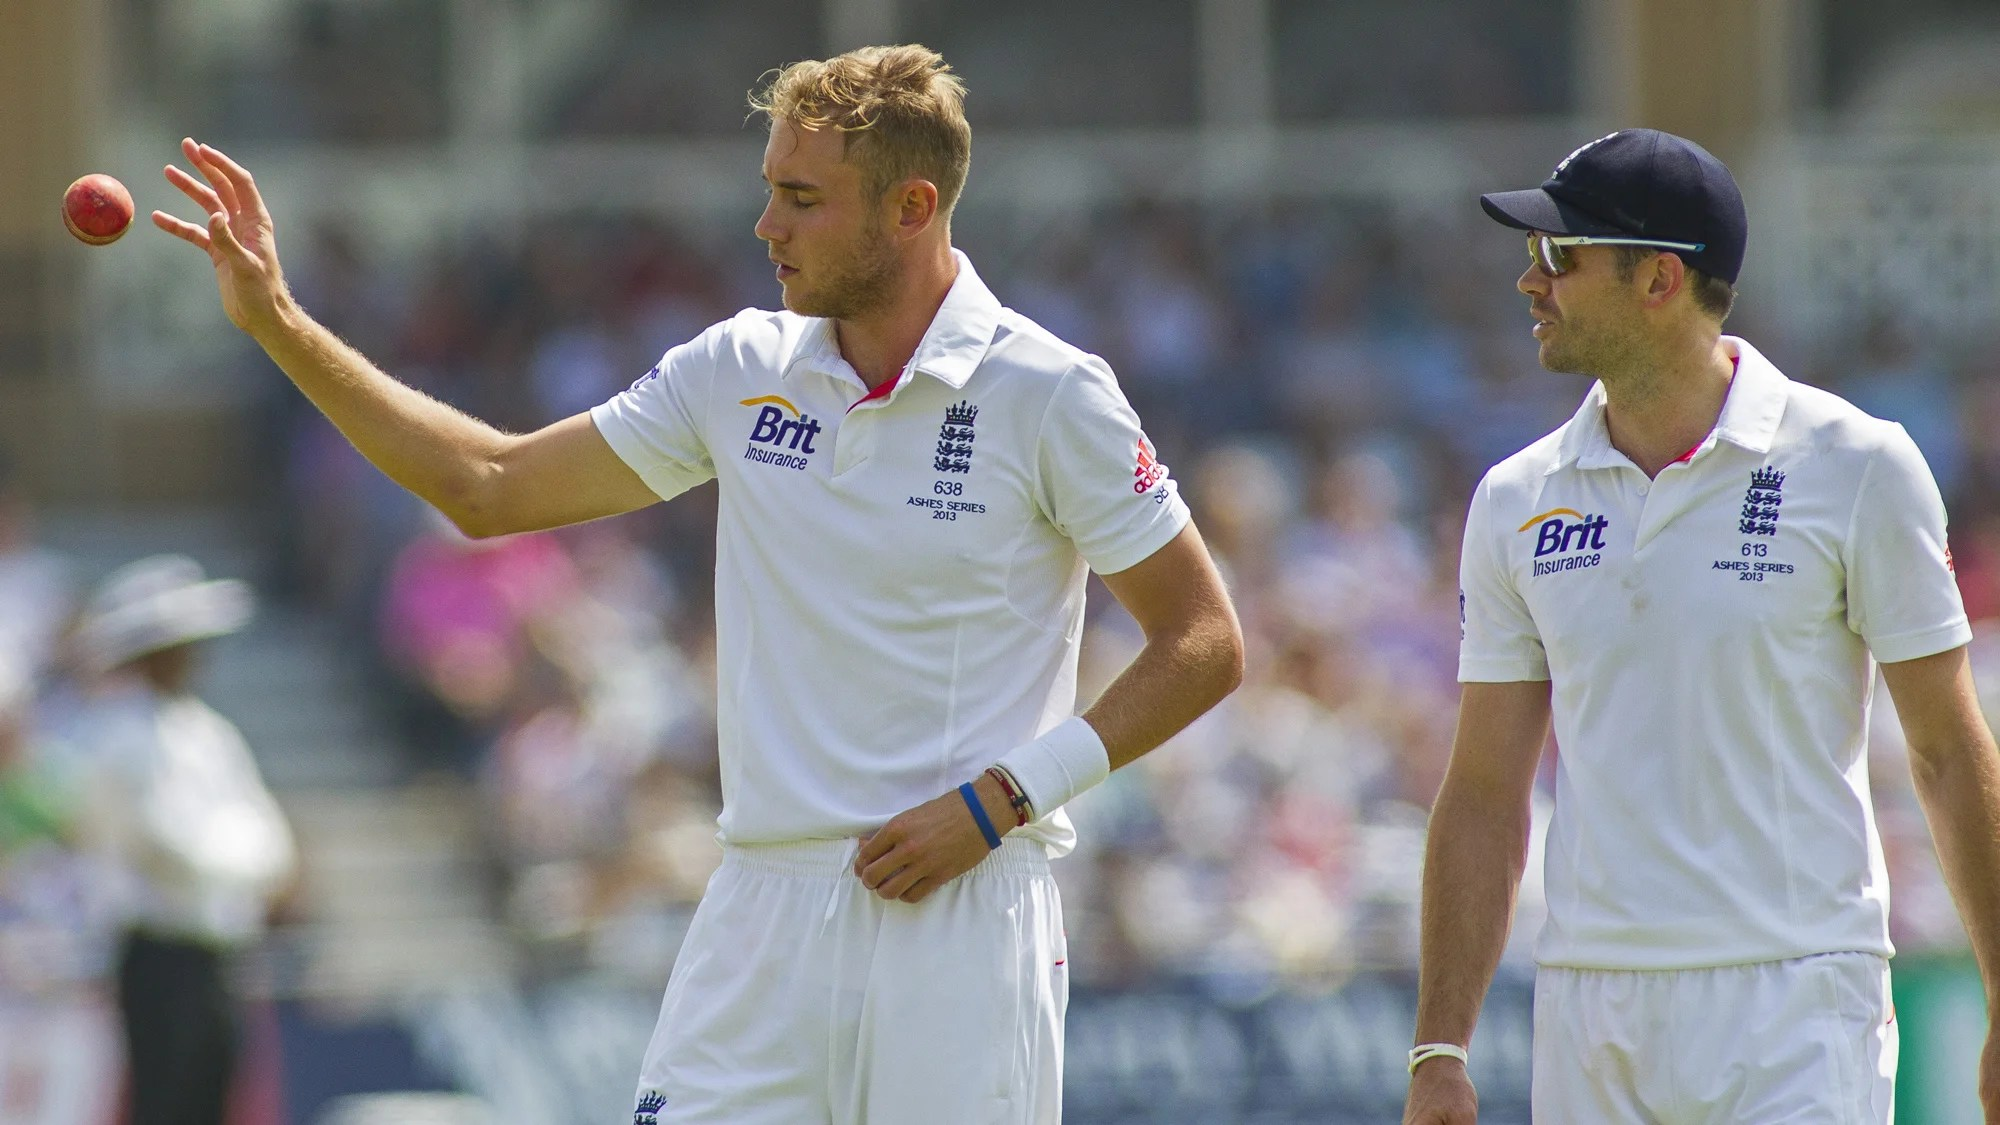 How To Watch South Africa Vs England Live Stream The